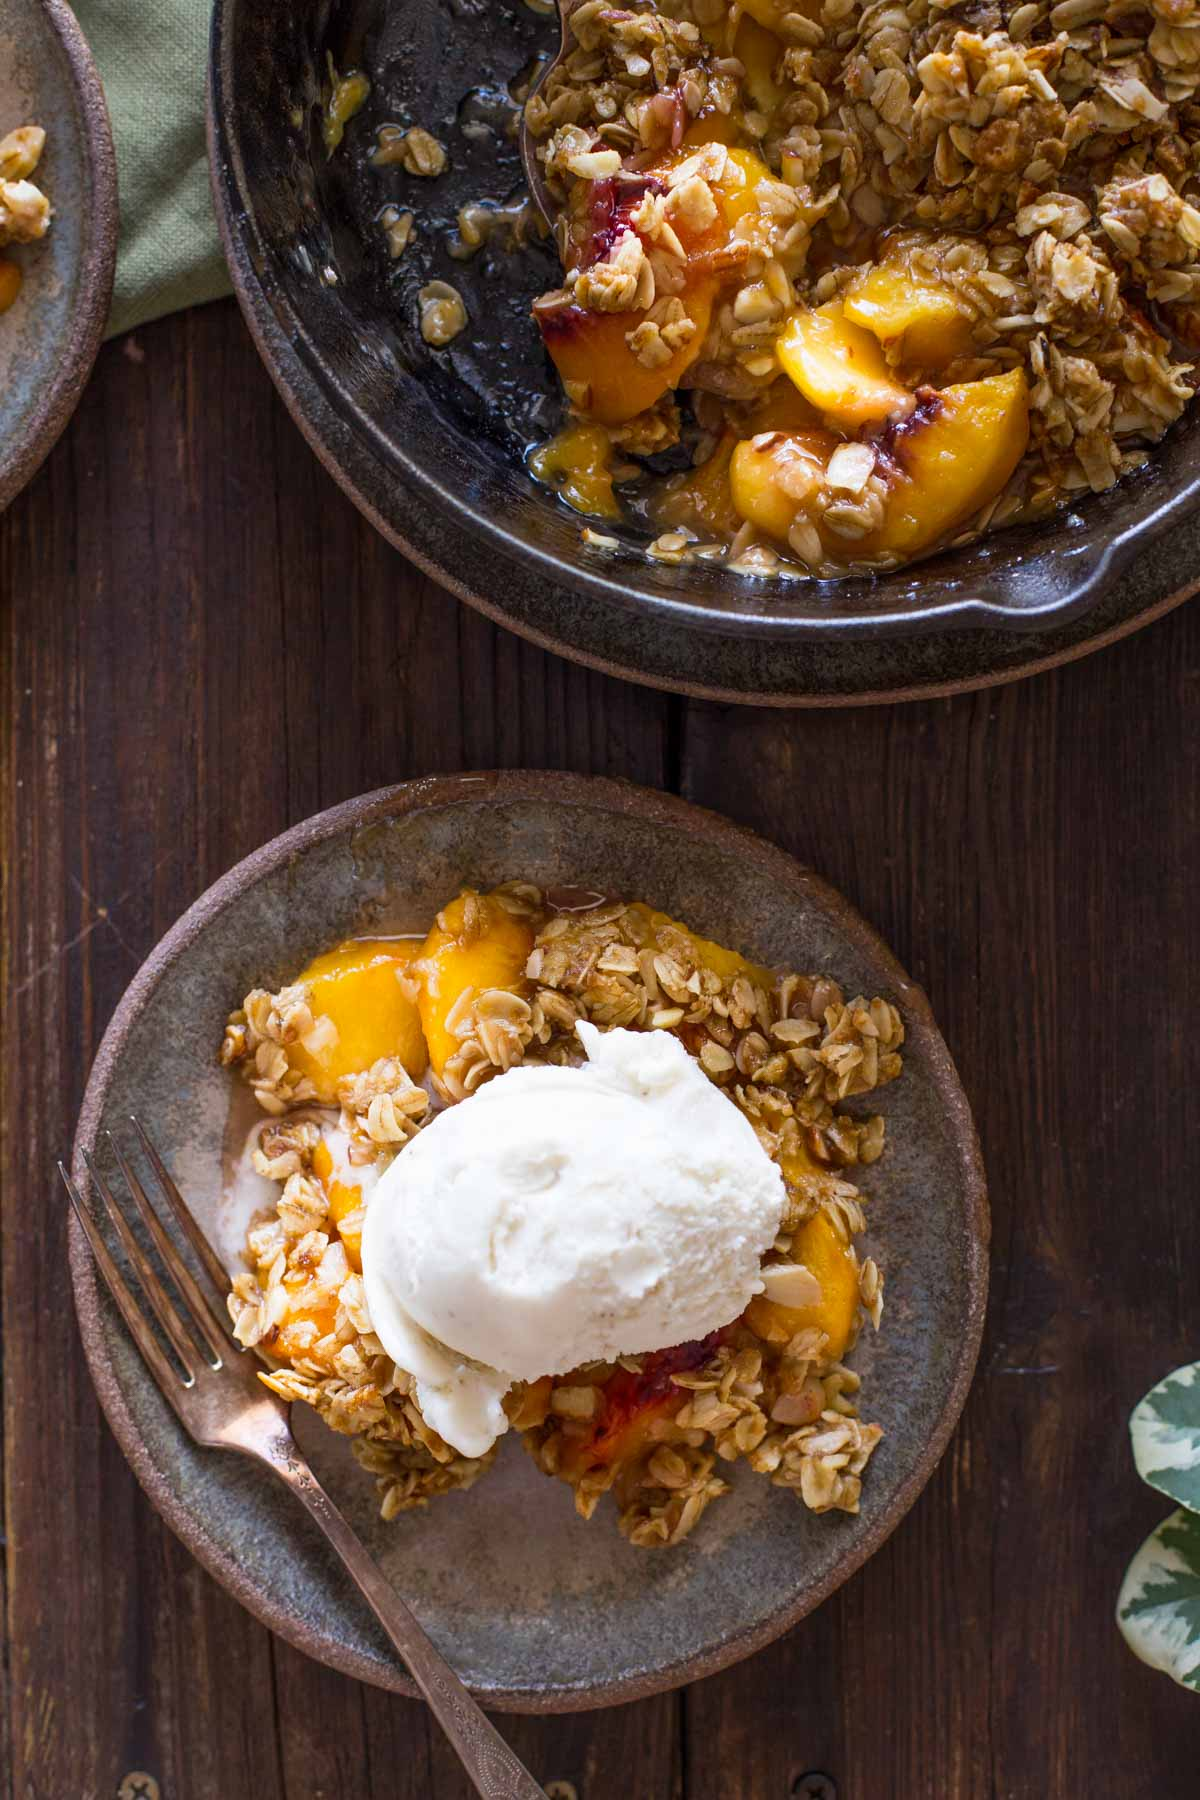 Just sweet, warm peaches with a blanket of crunchy, buttery oats and almonds. Easier than pie!